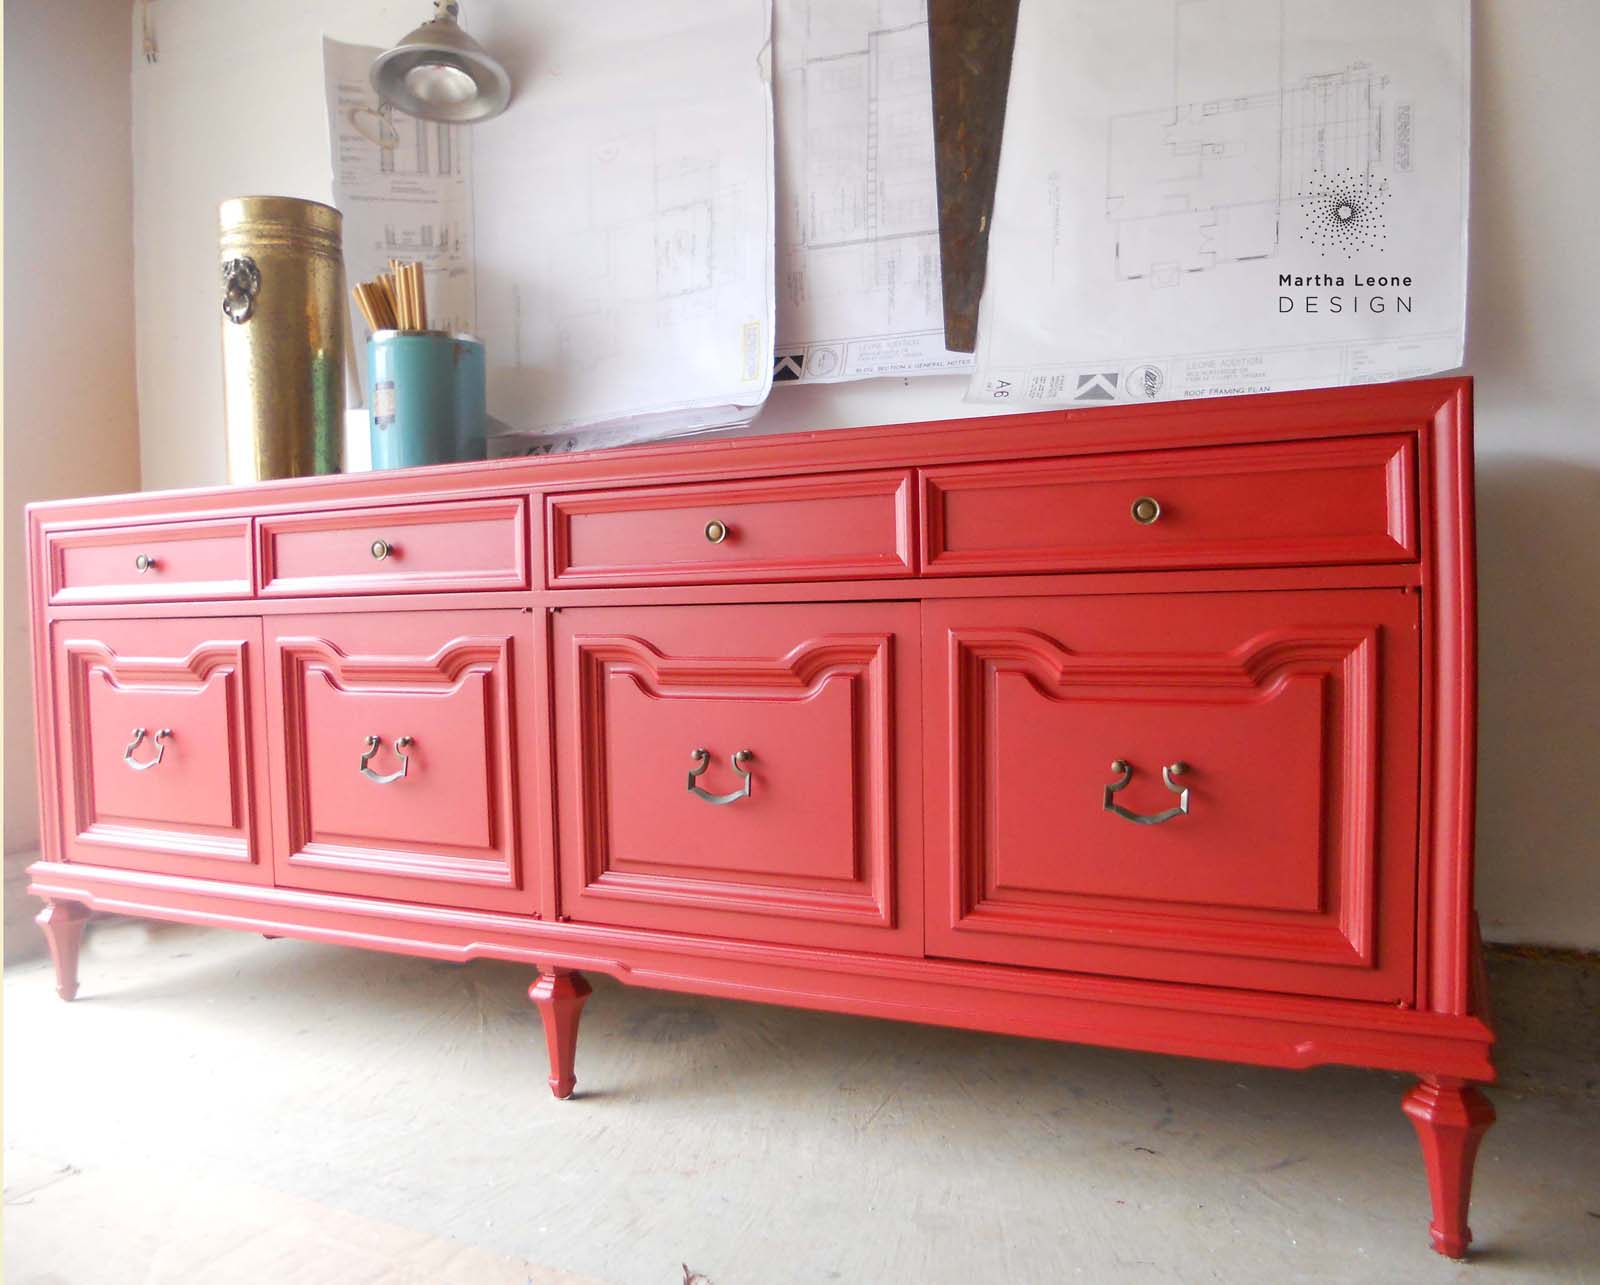 Red buffet3 by Martha Leone Design